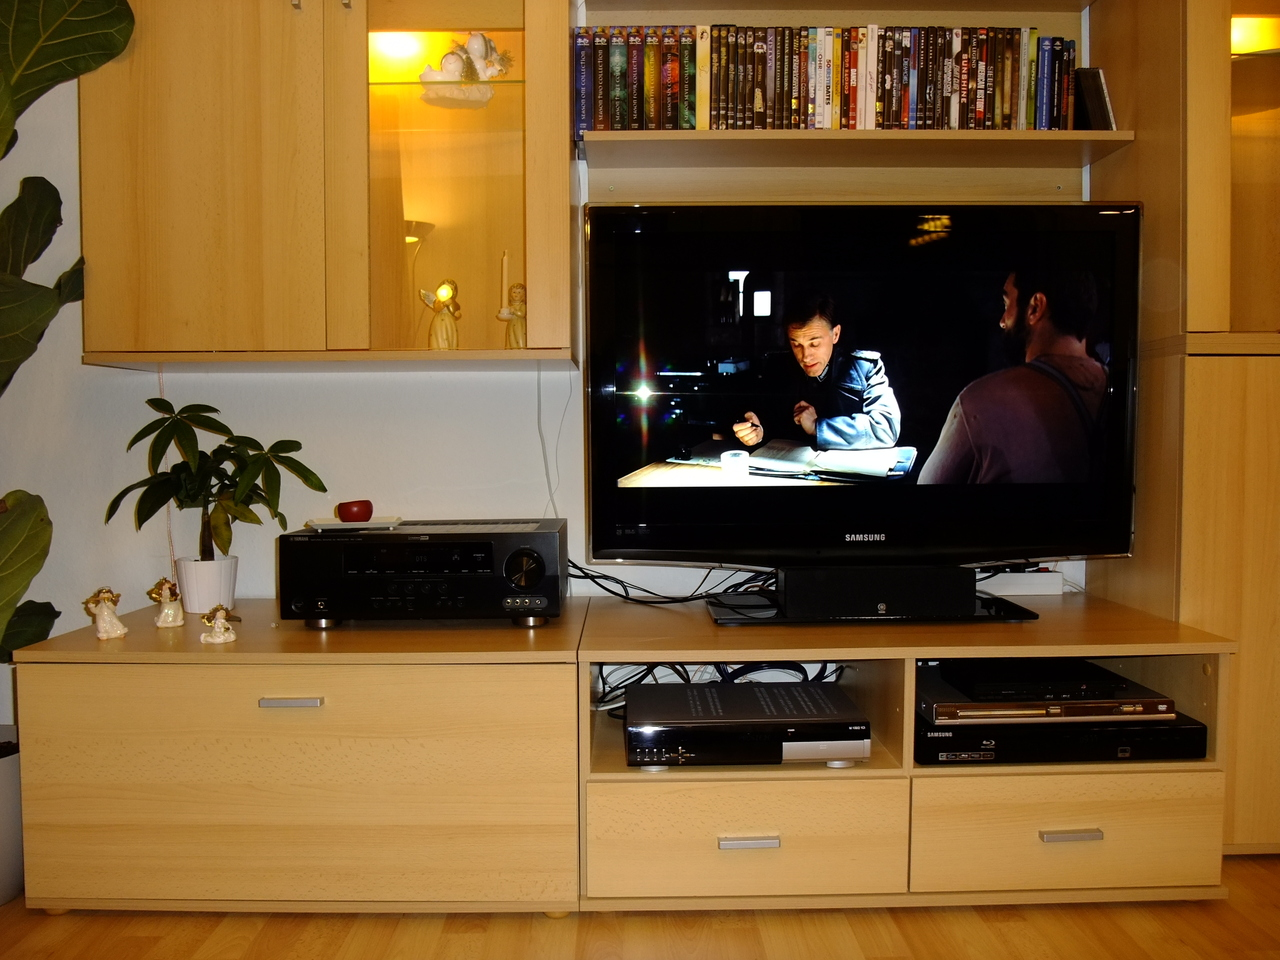 Keyj S Blog Blog Archive 187 My New Sort Of Home Theater